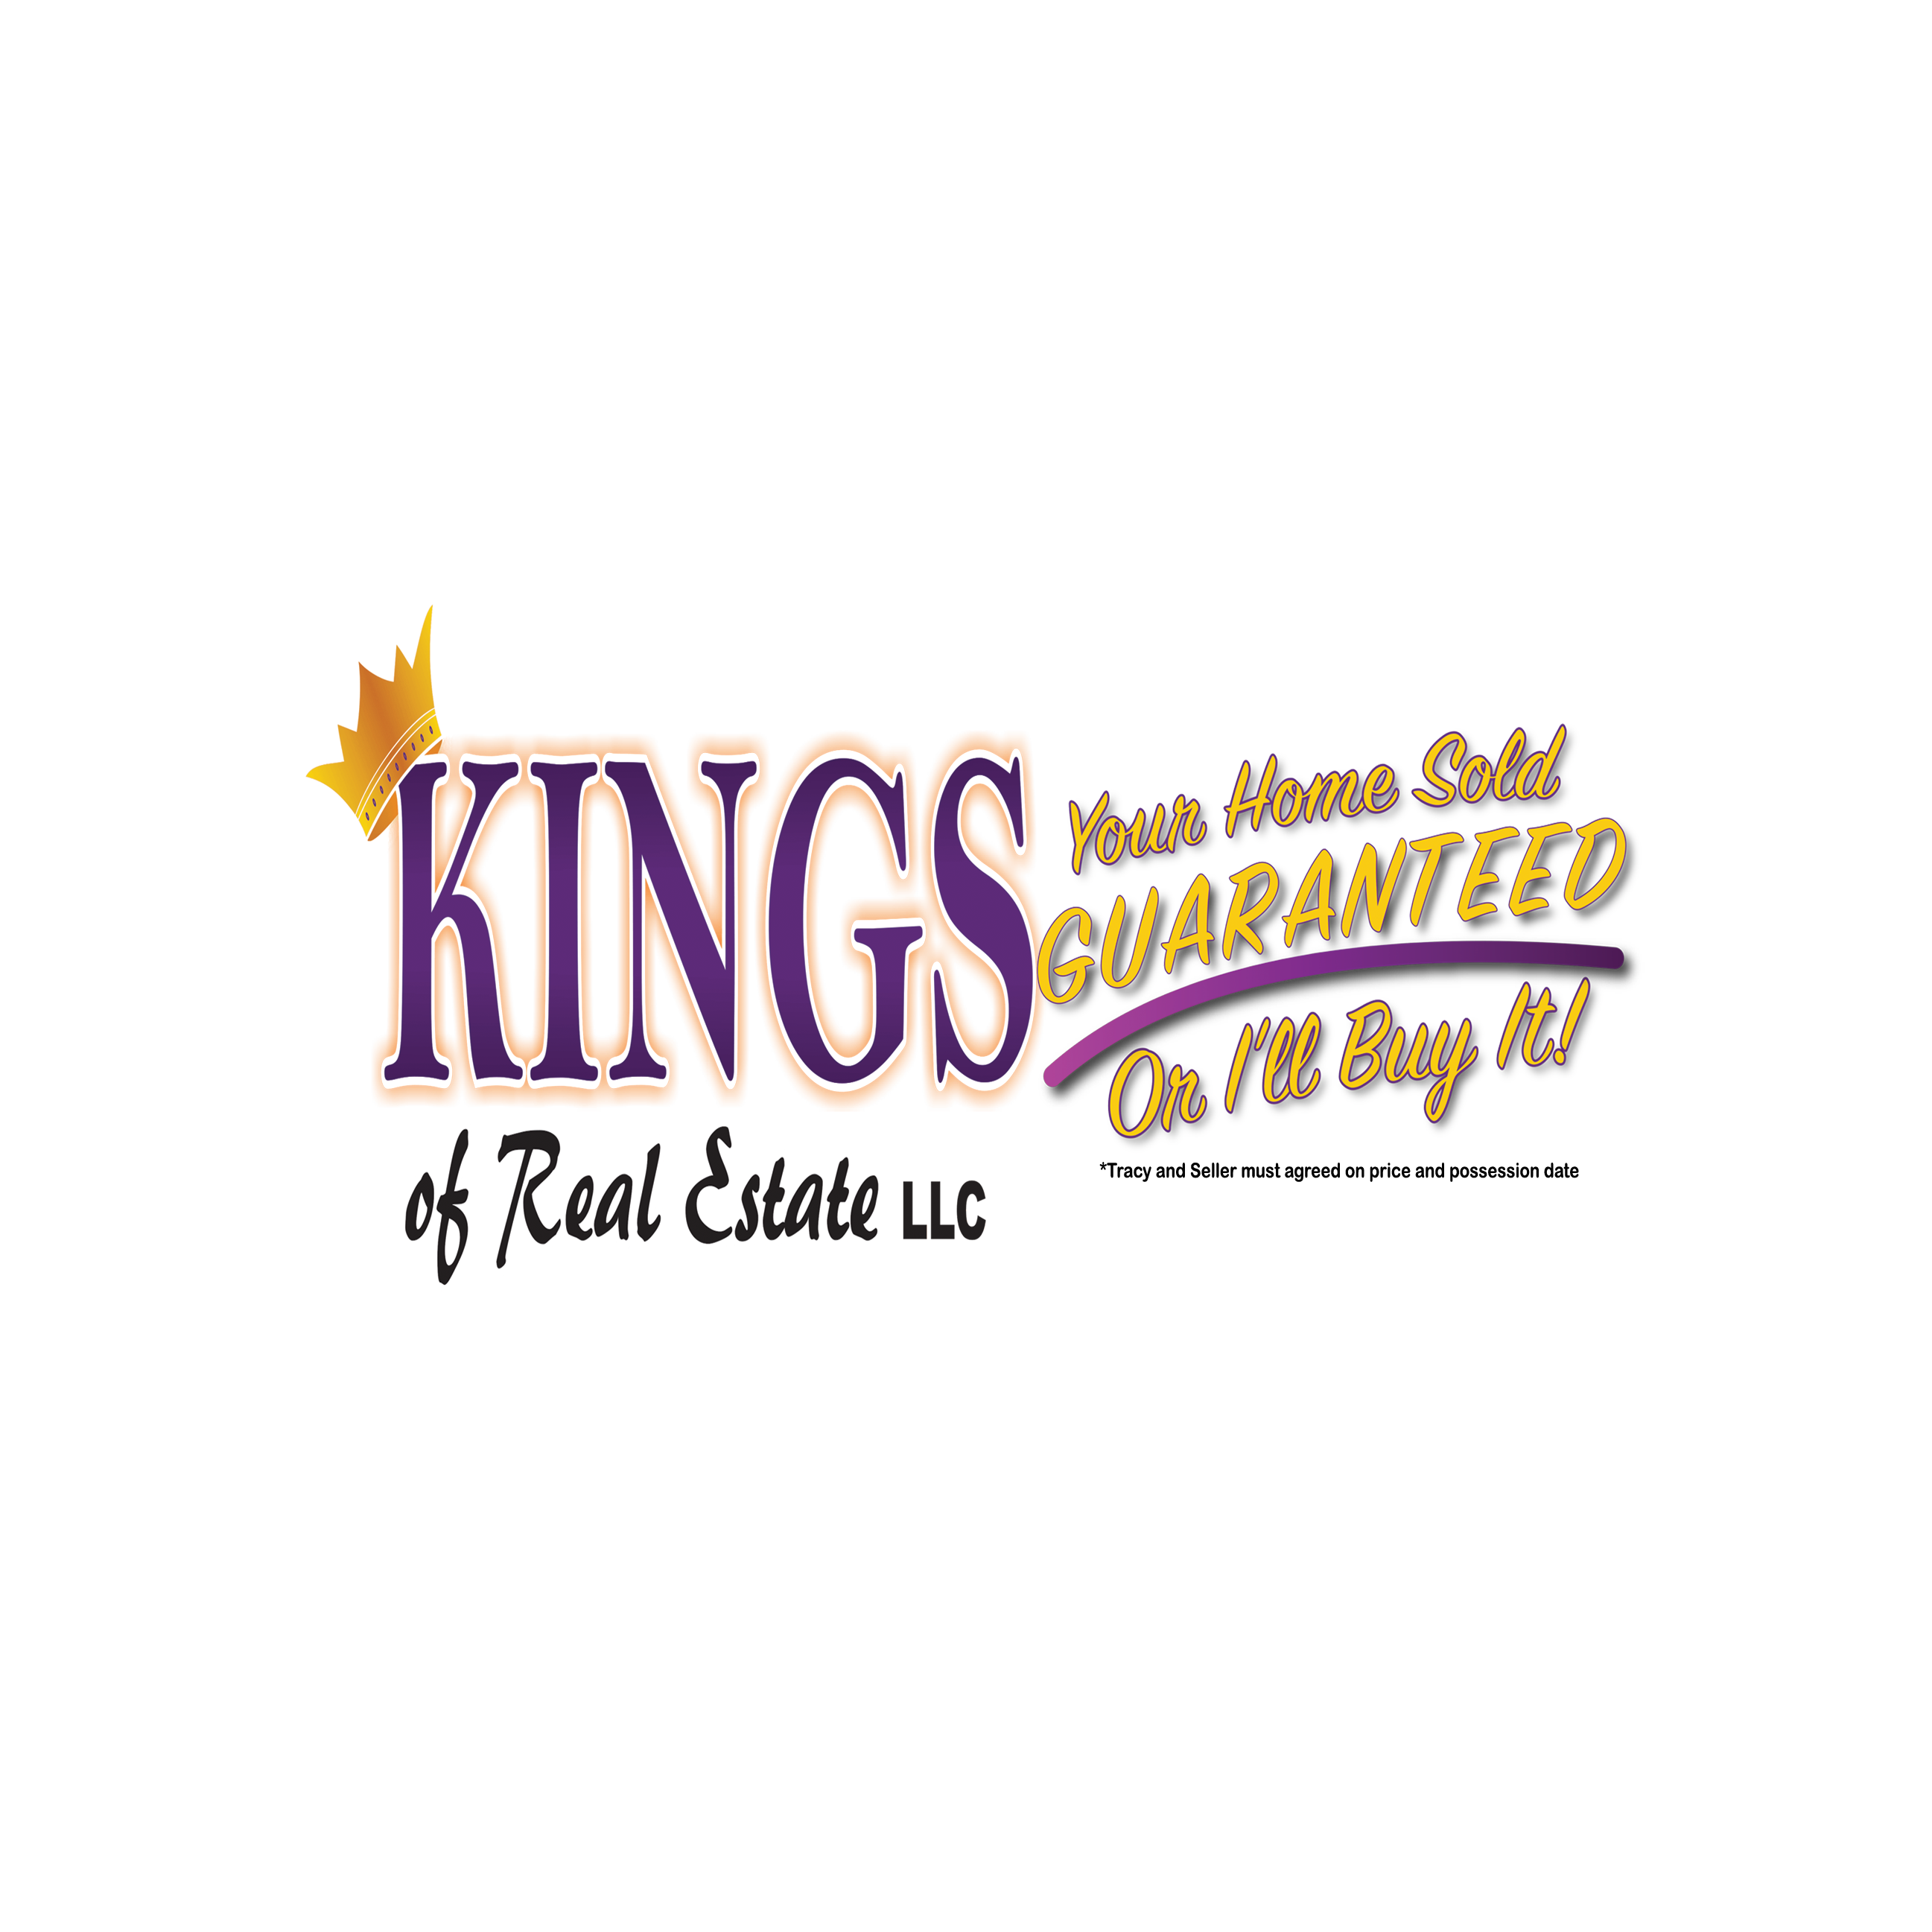 Kings of Real Estate LLC - Knoxville, TN